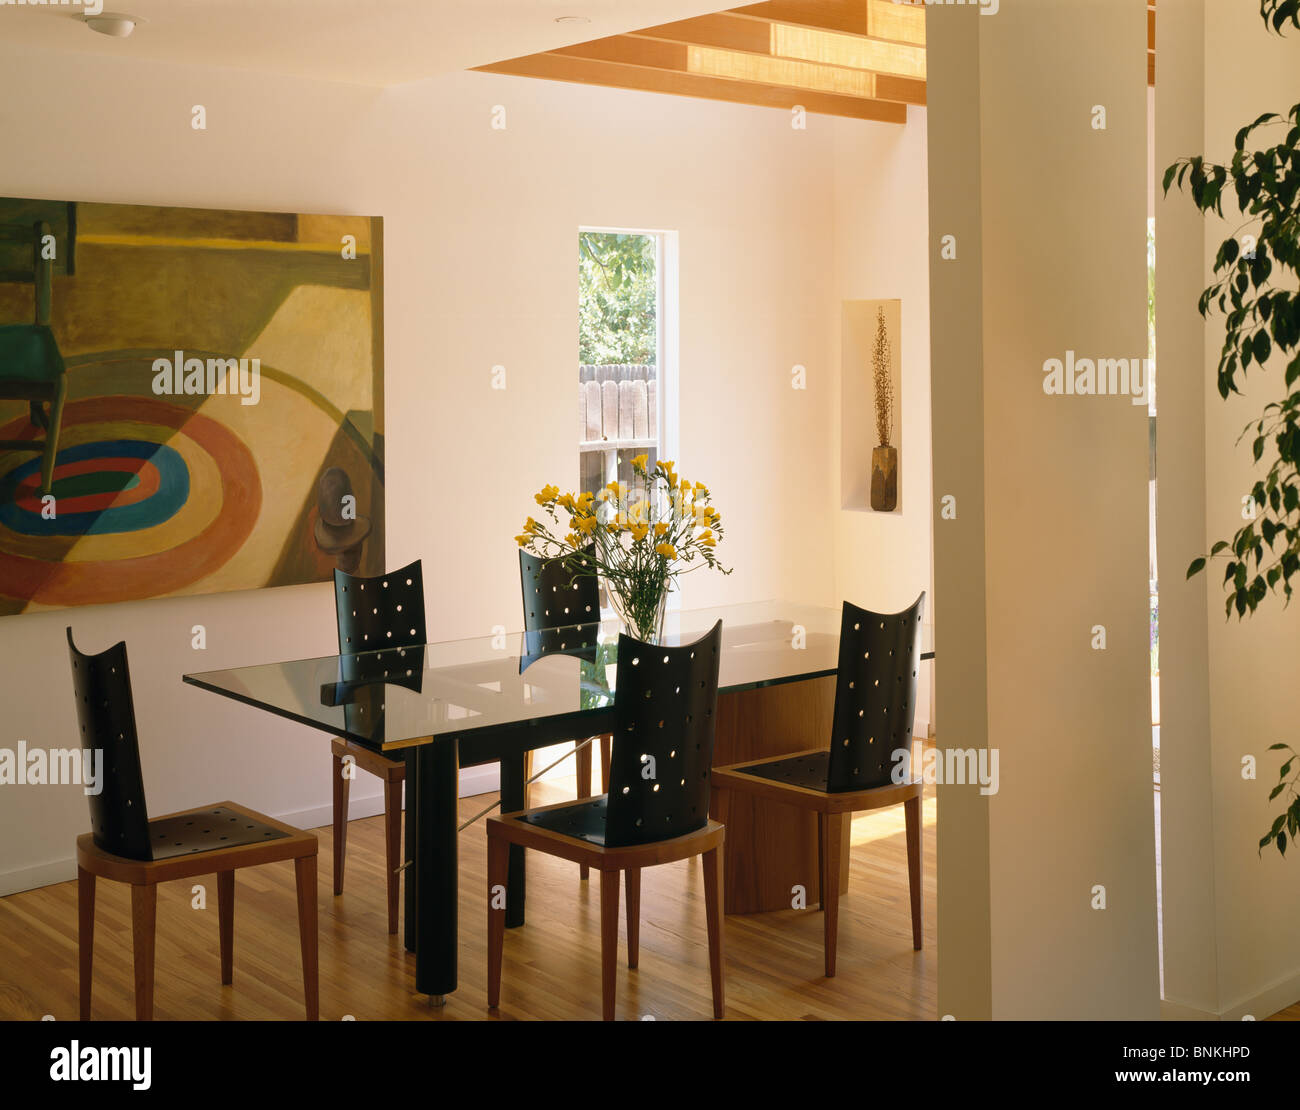 Interiors Dining Rooms Modern Pictures Stockfotos & Interiors Dining ...